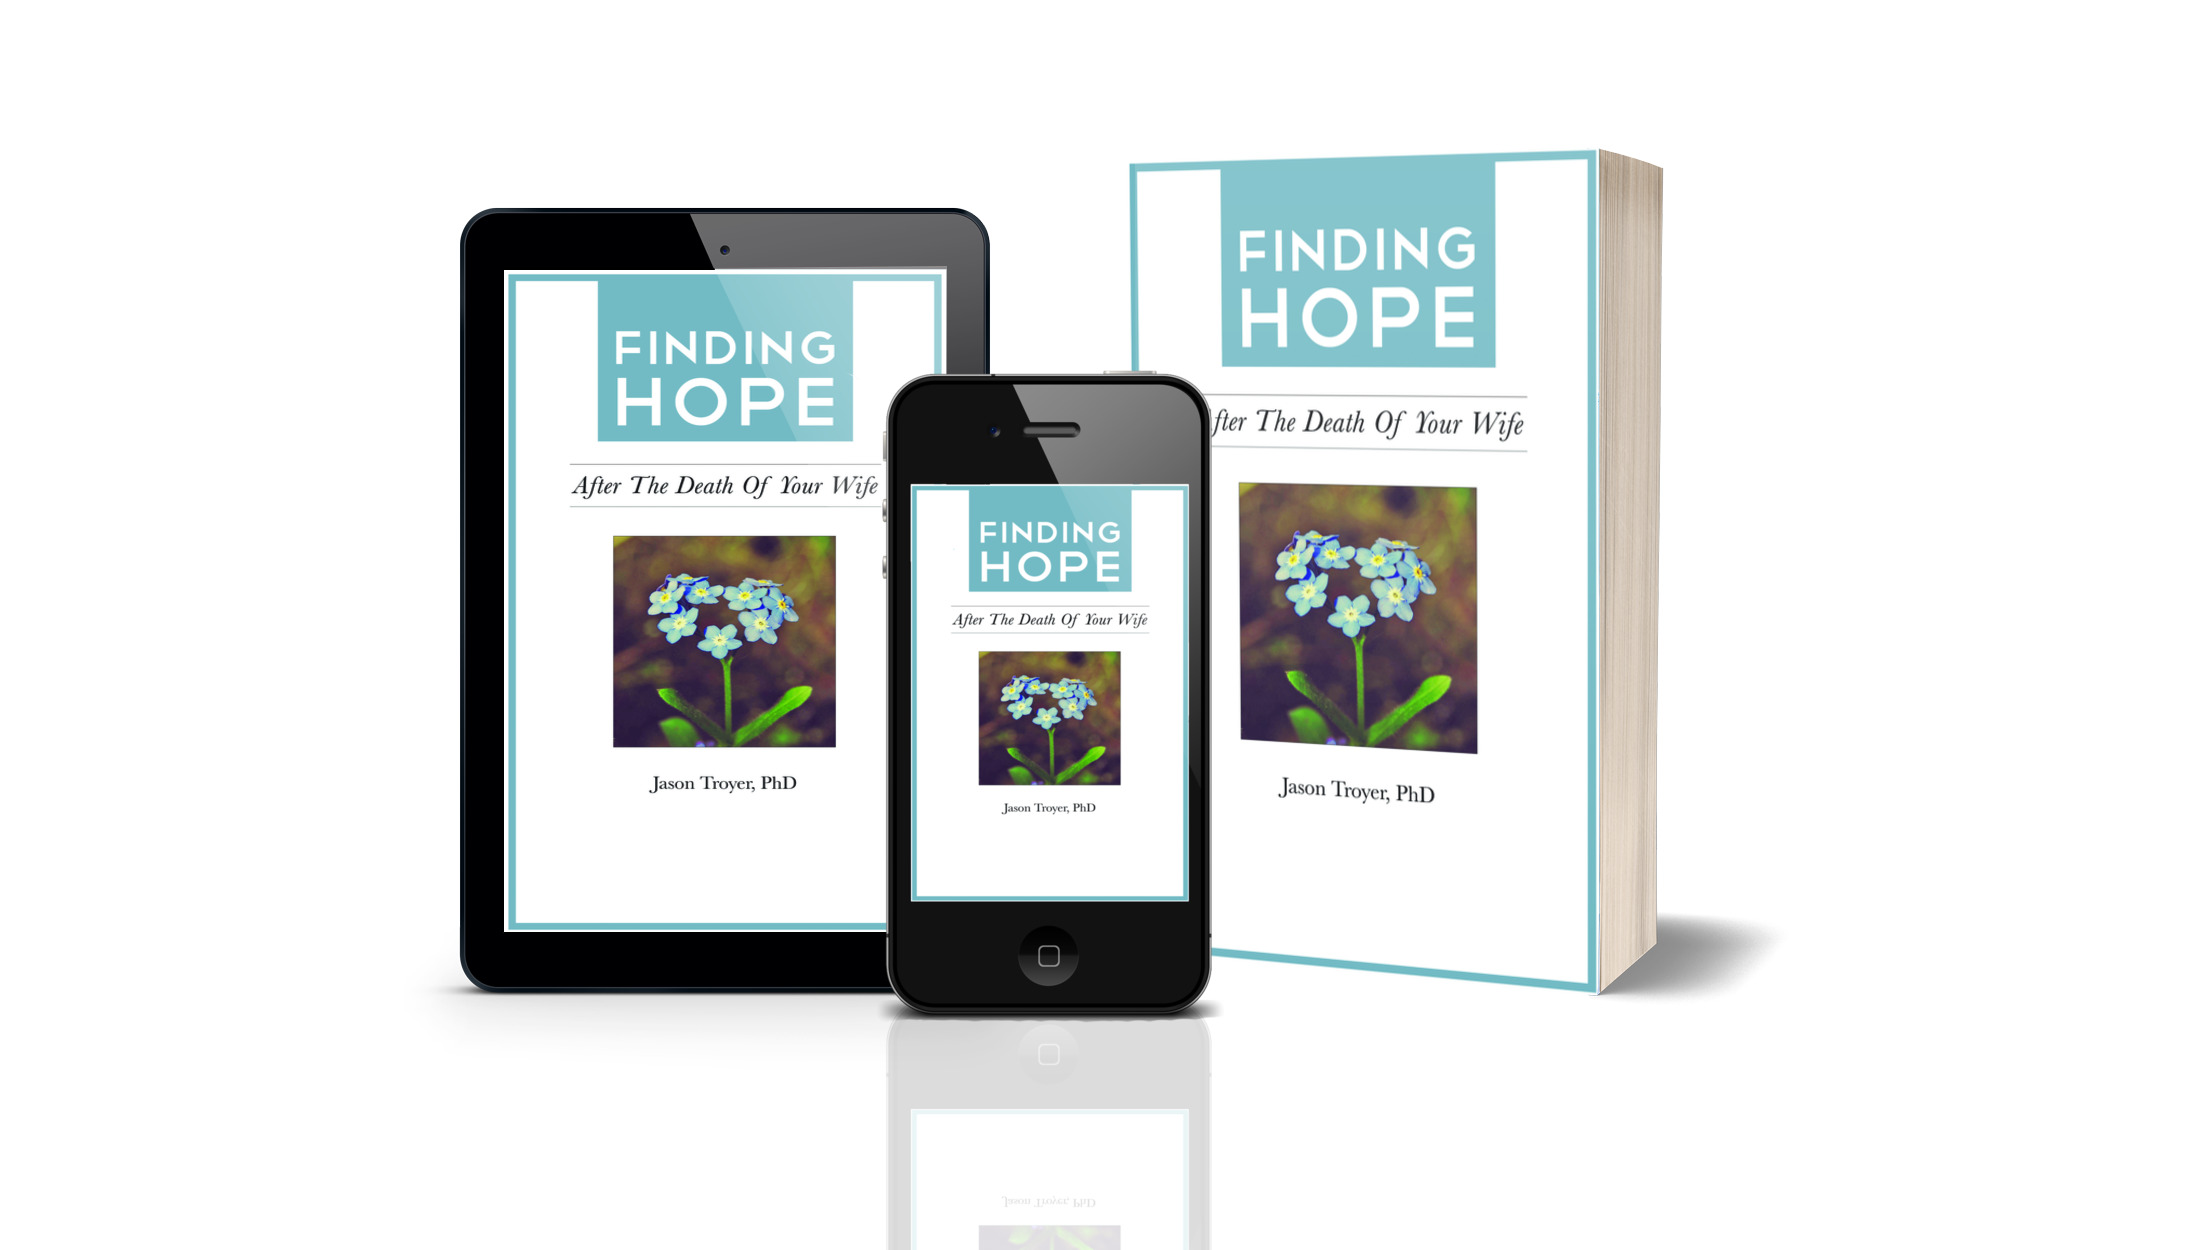 Finding Hope after the Loss of a Wife - Click Here to Download